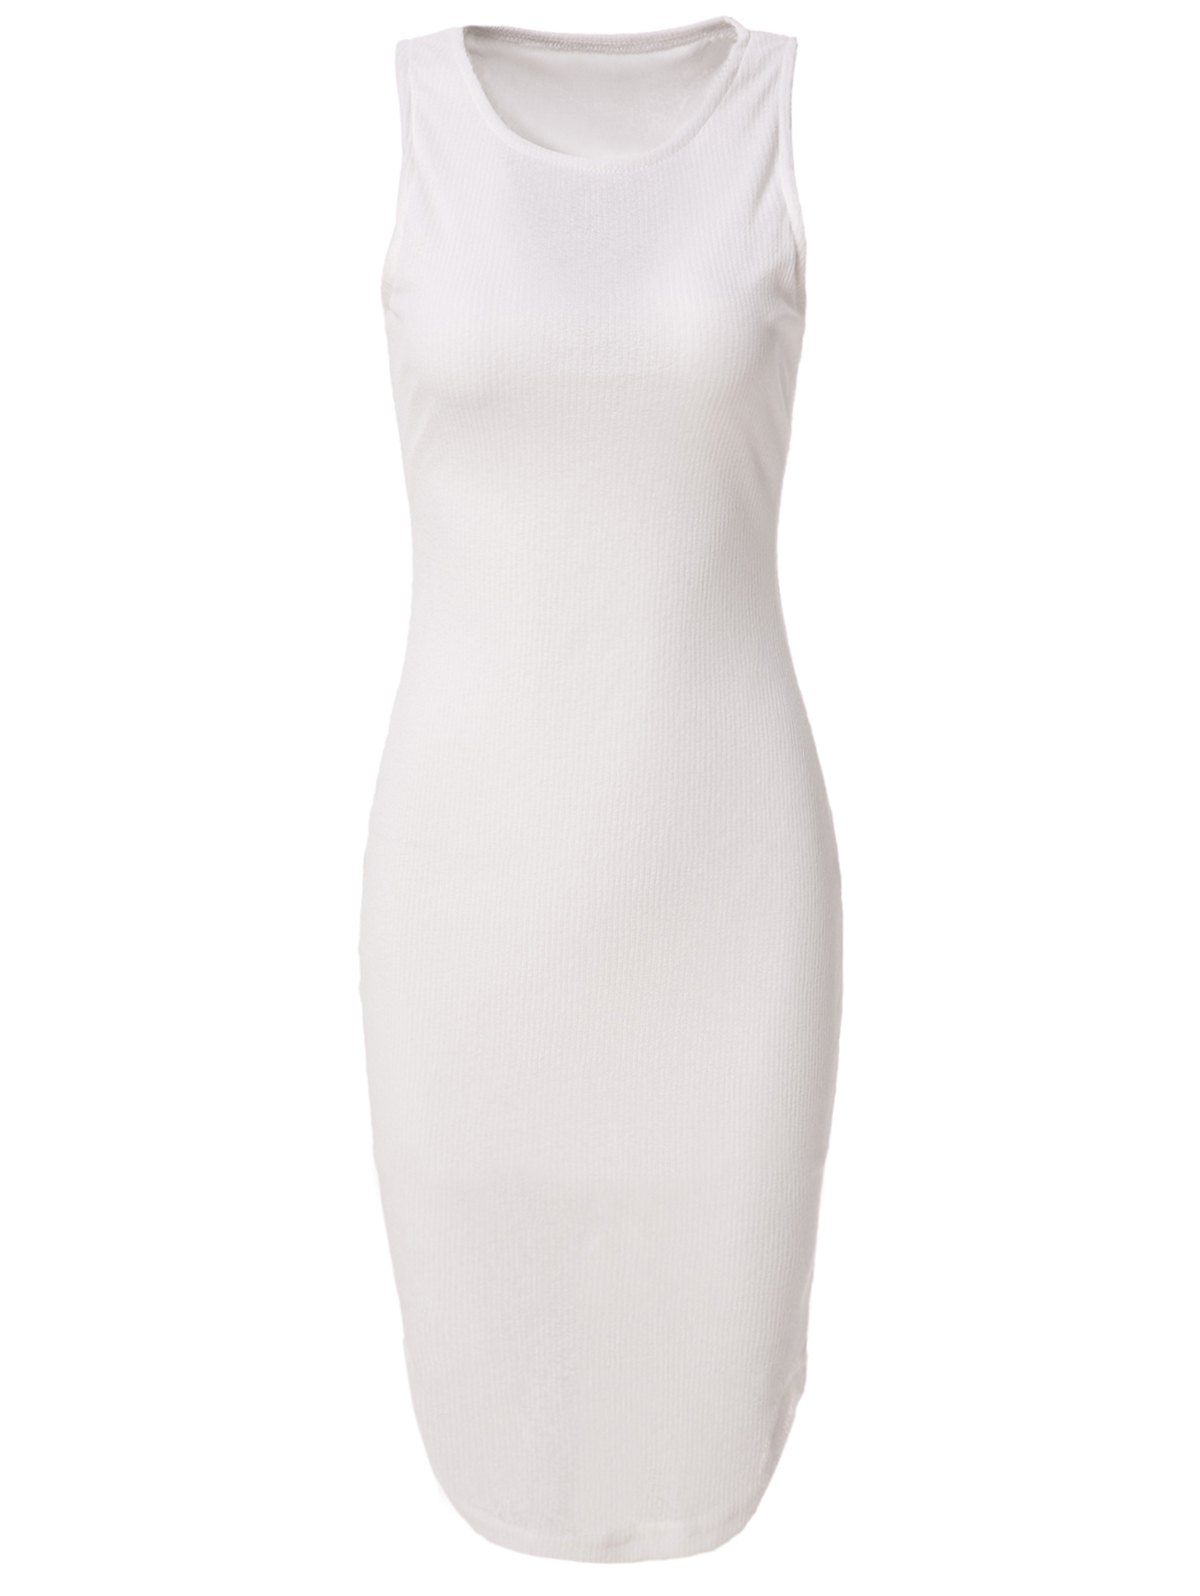 Casual Scoop White Neck Sleeveless Knee-Length Dress For Women - WHITE M